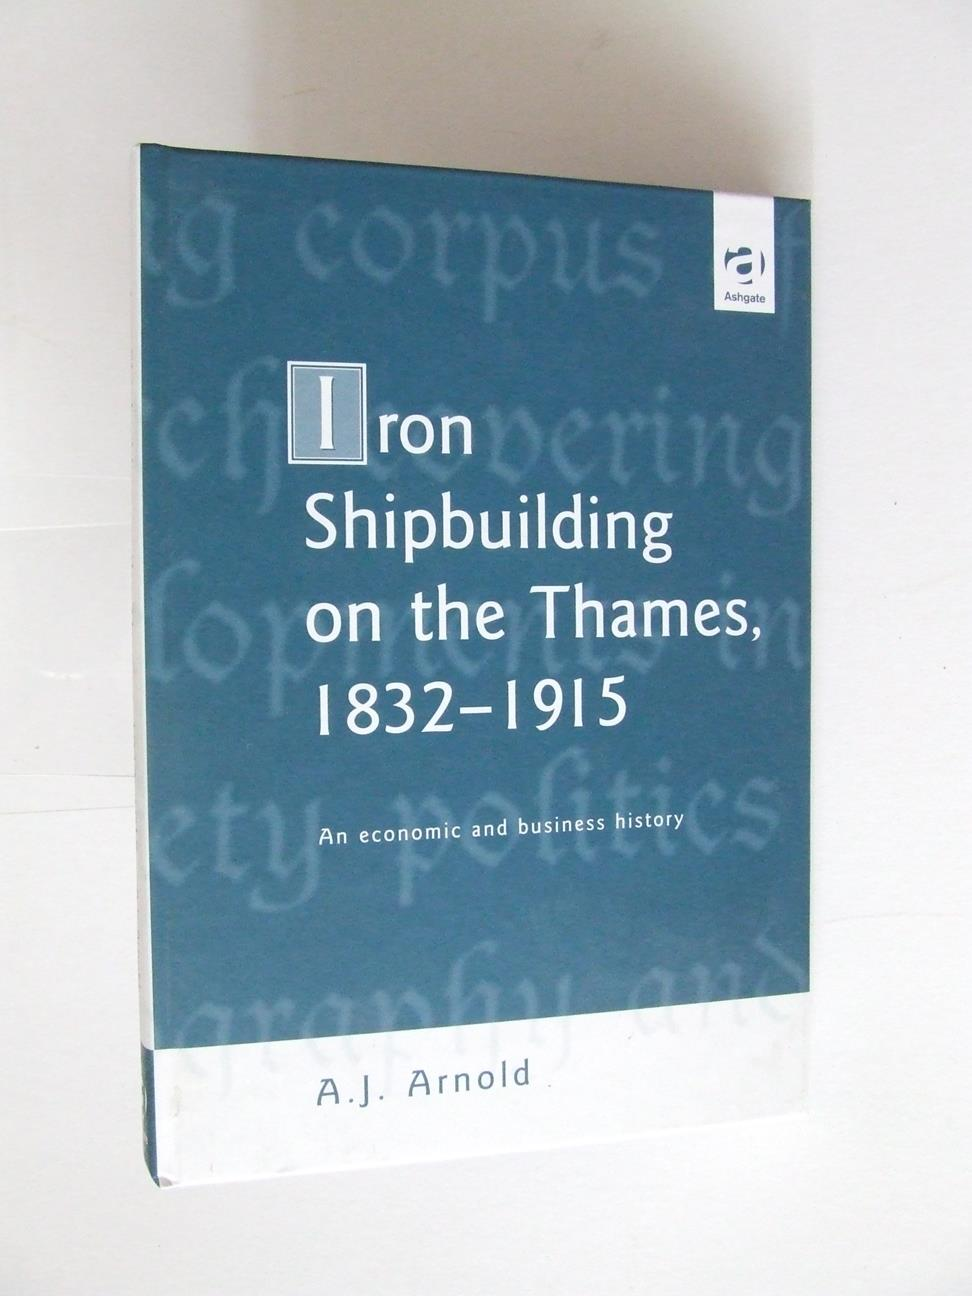 Iron Shipbuilding on the Thames, 1832-1915. an economic and business history